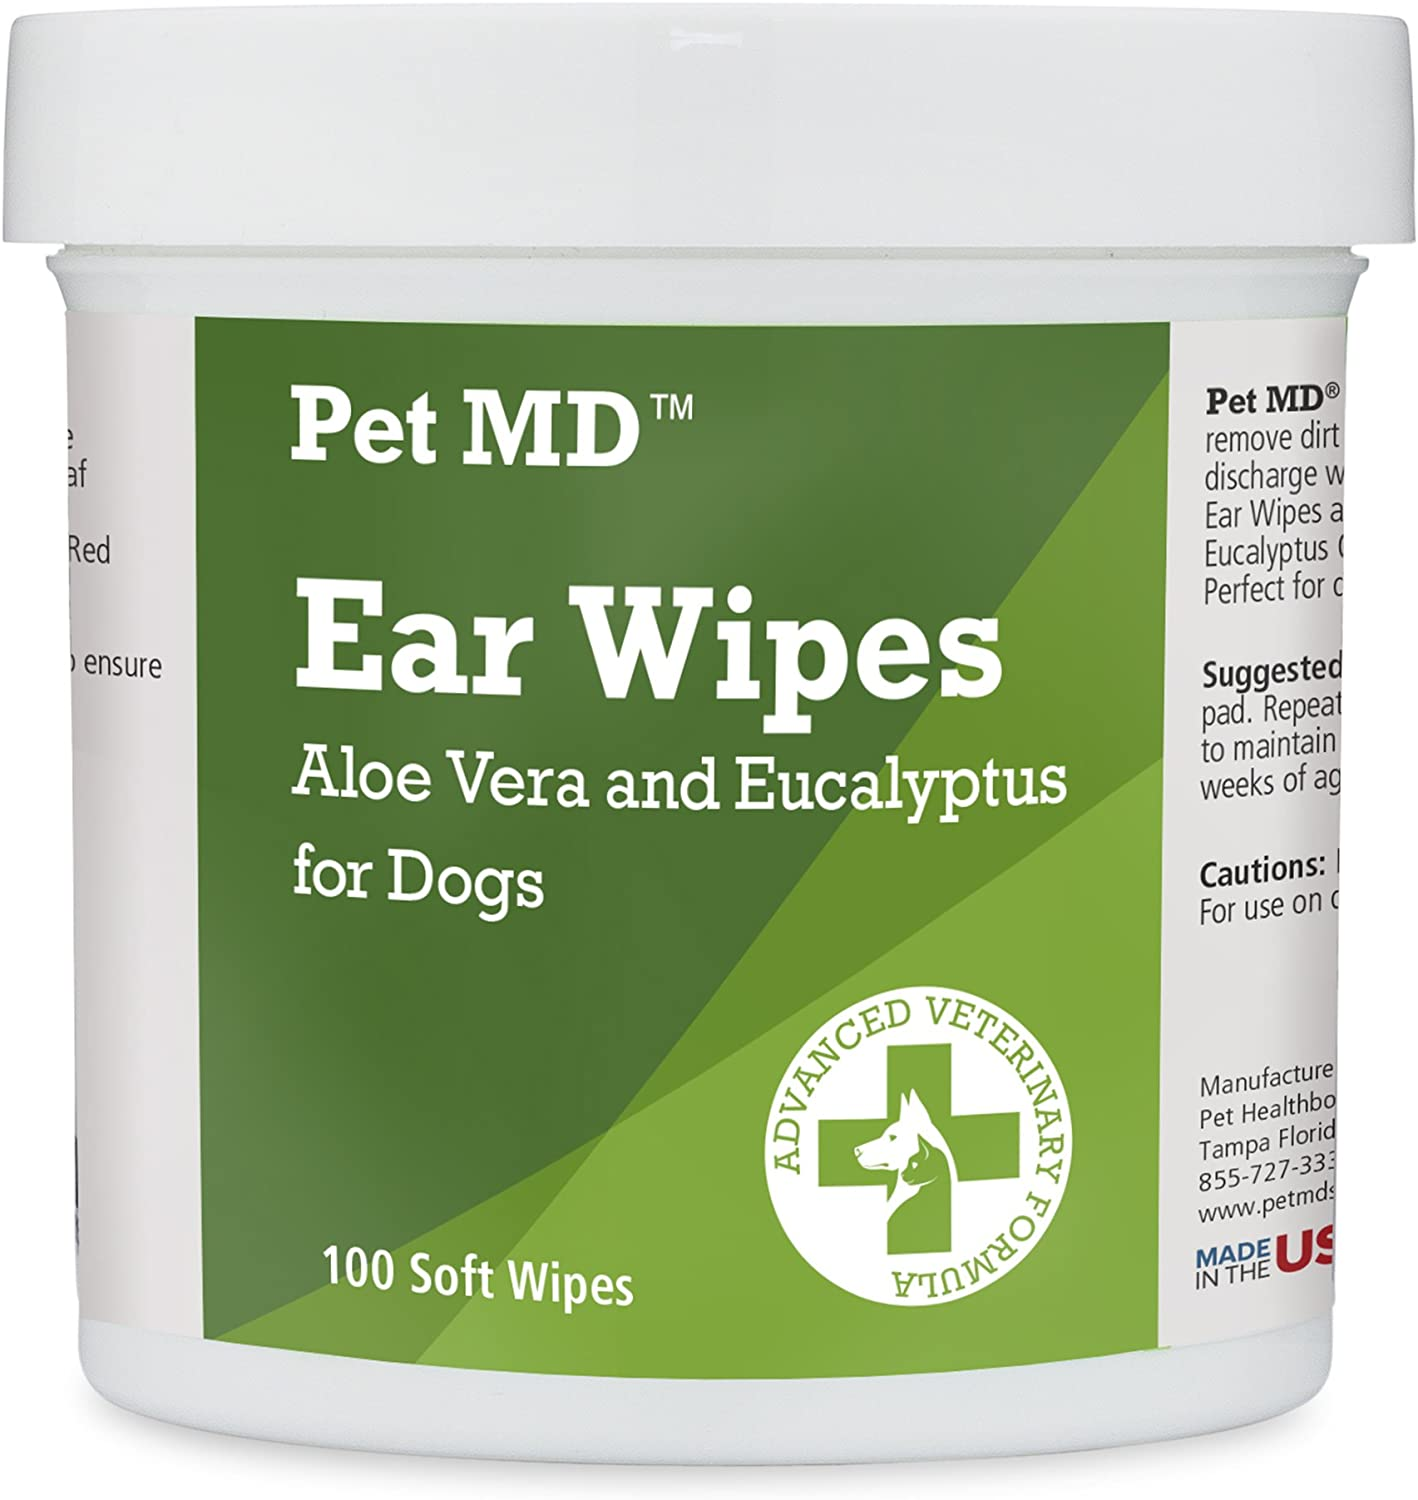 Pet MD Ear Wipes for Dogs